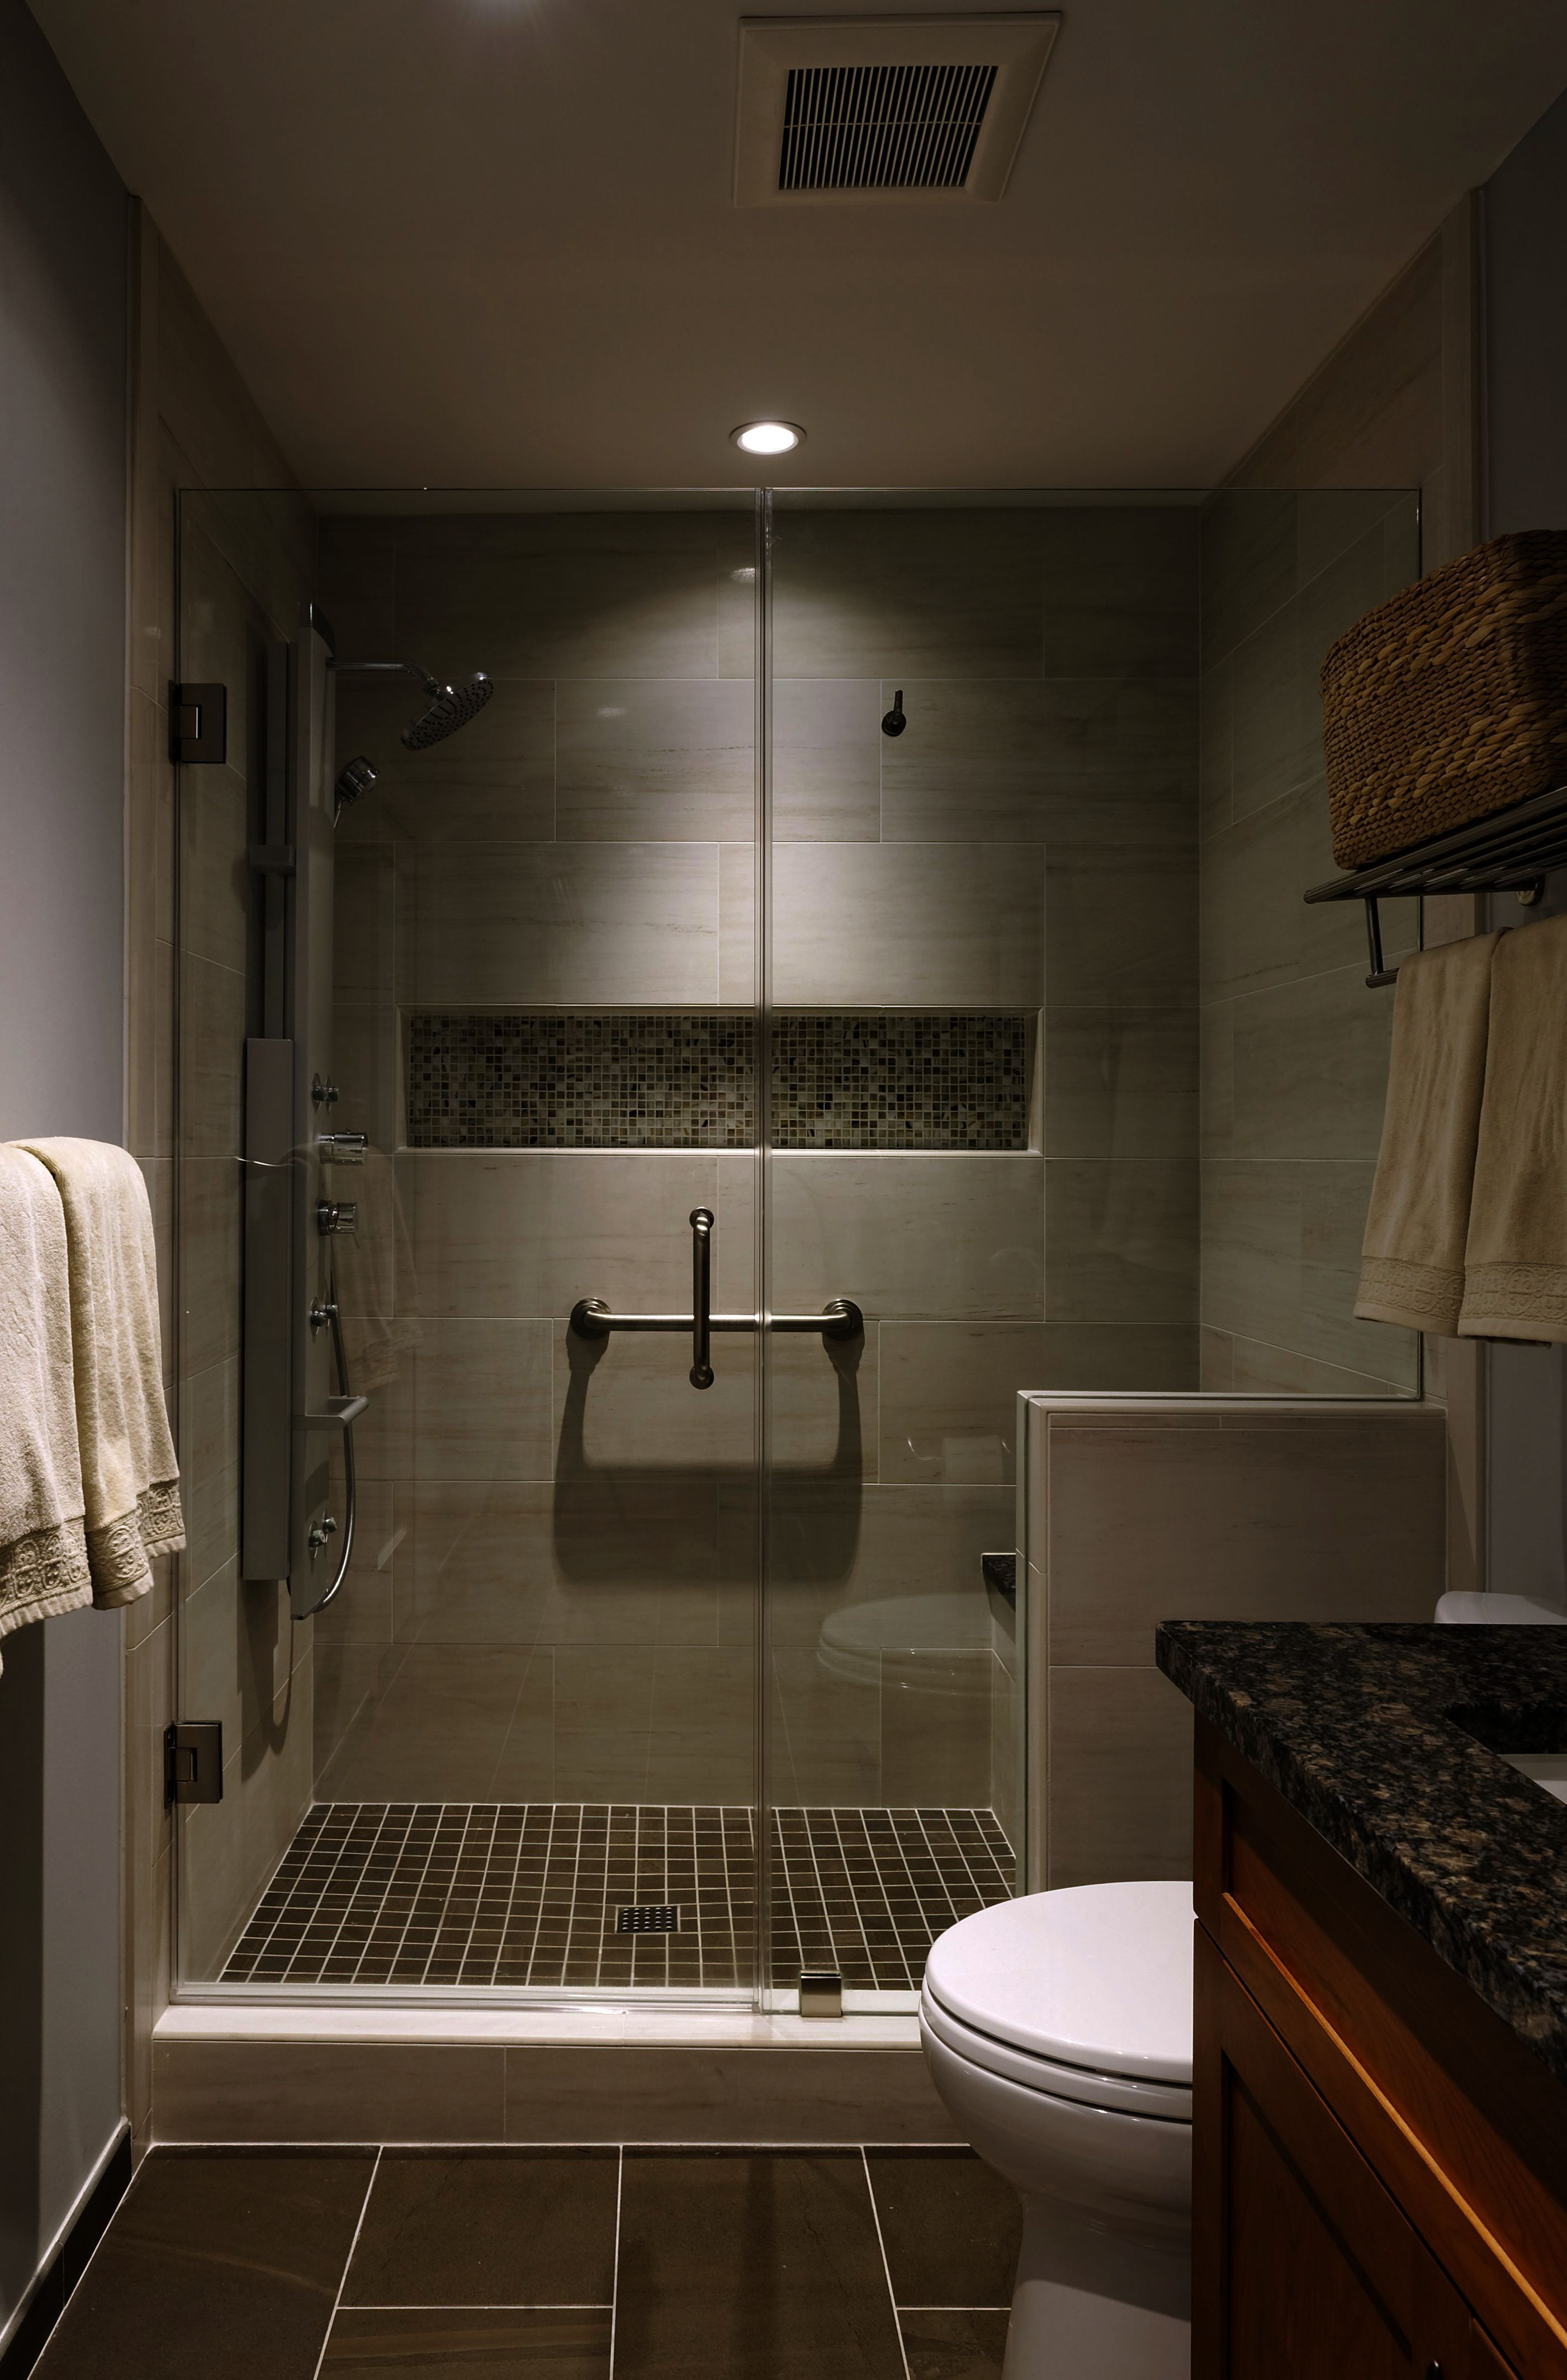 Bathroom Glass Little Bathroom Cabinets Made To Order If Bathroom Ideas In Black While Bath Brown Tile Bathroom Bathroom Remodel Shower Bathroom Remodel Master